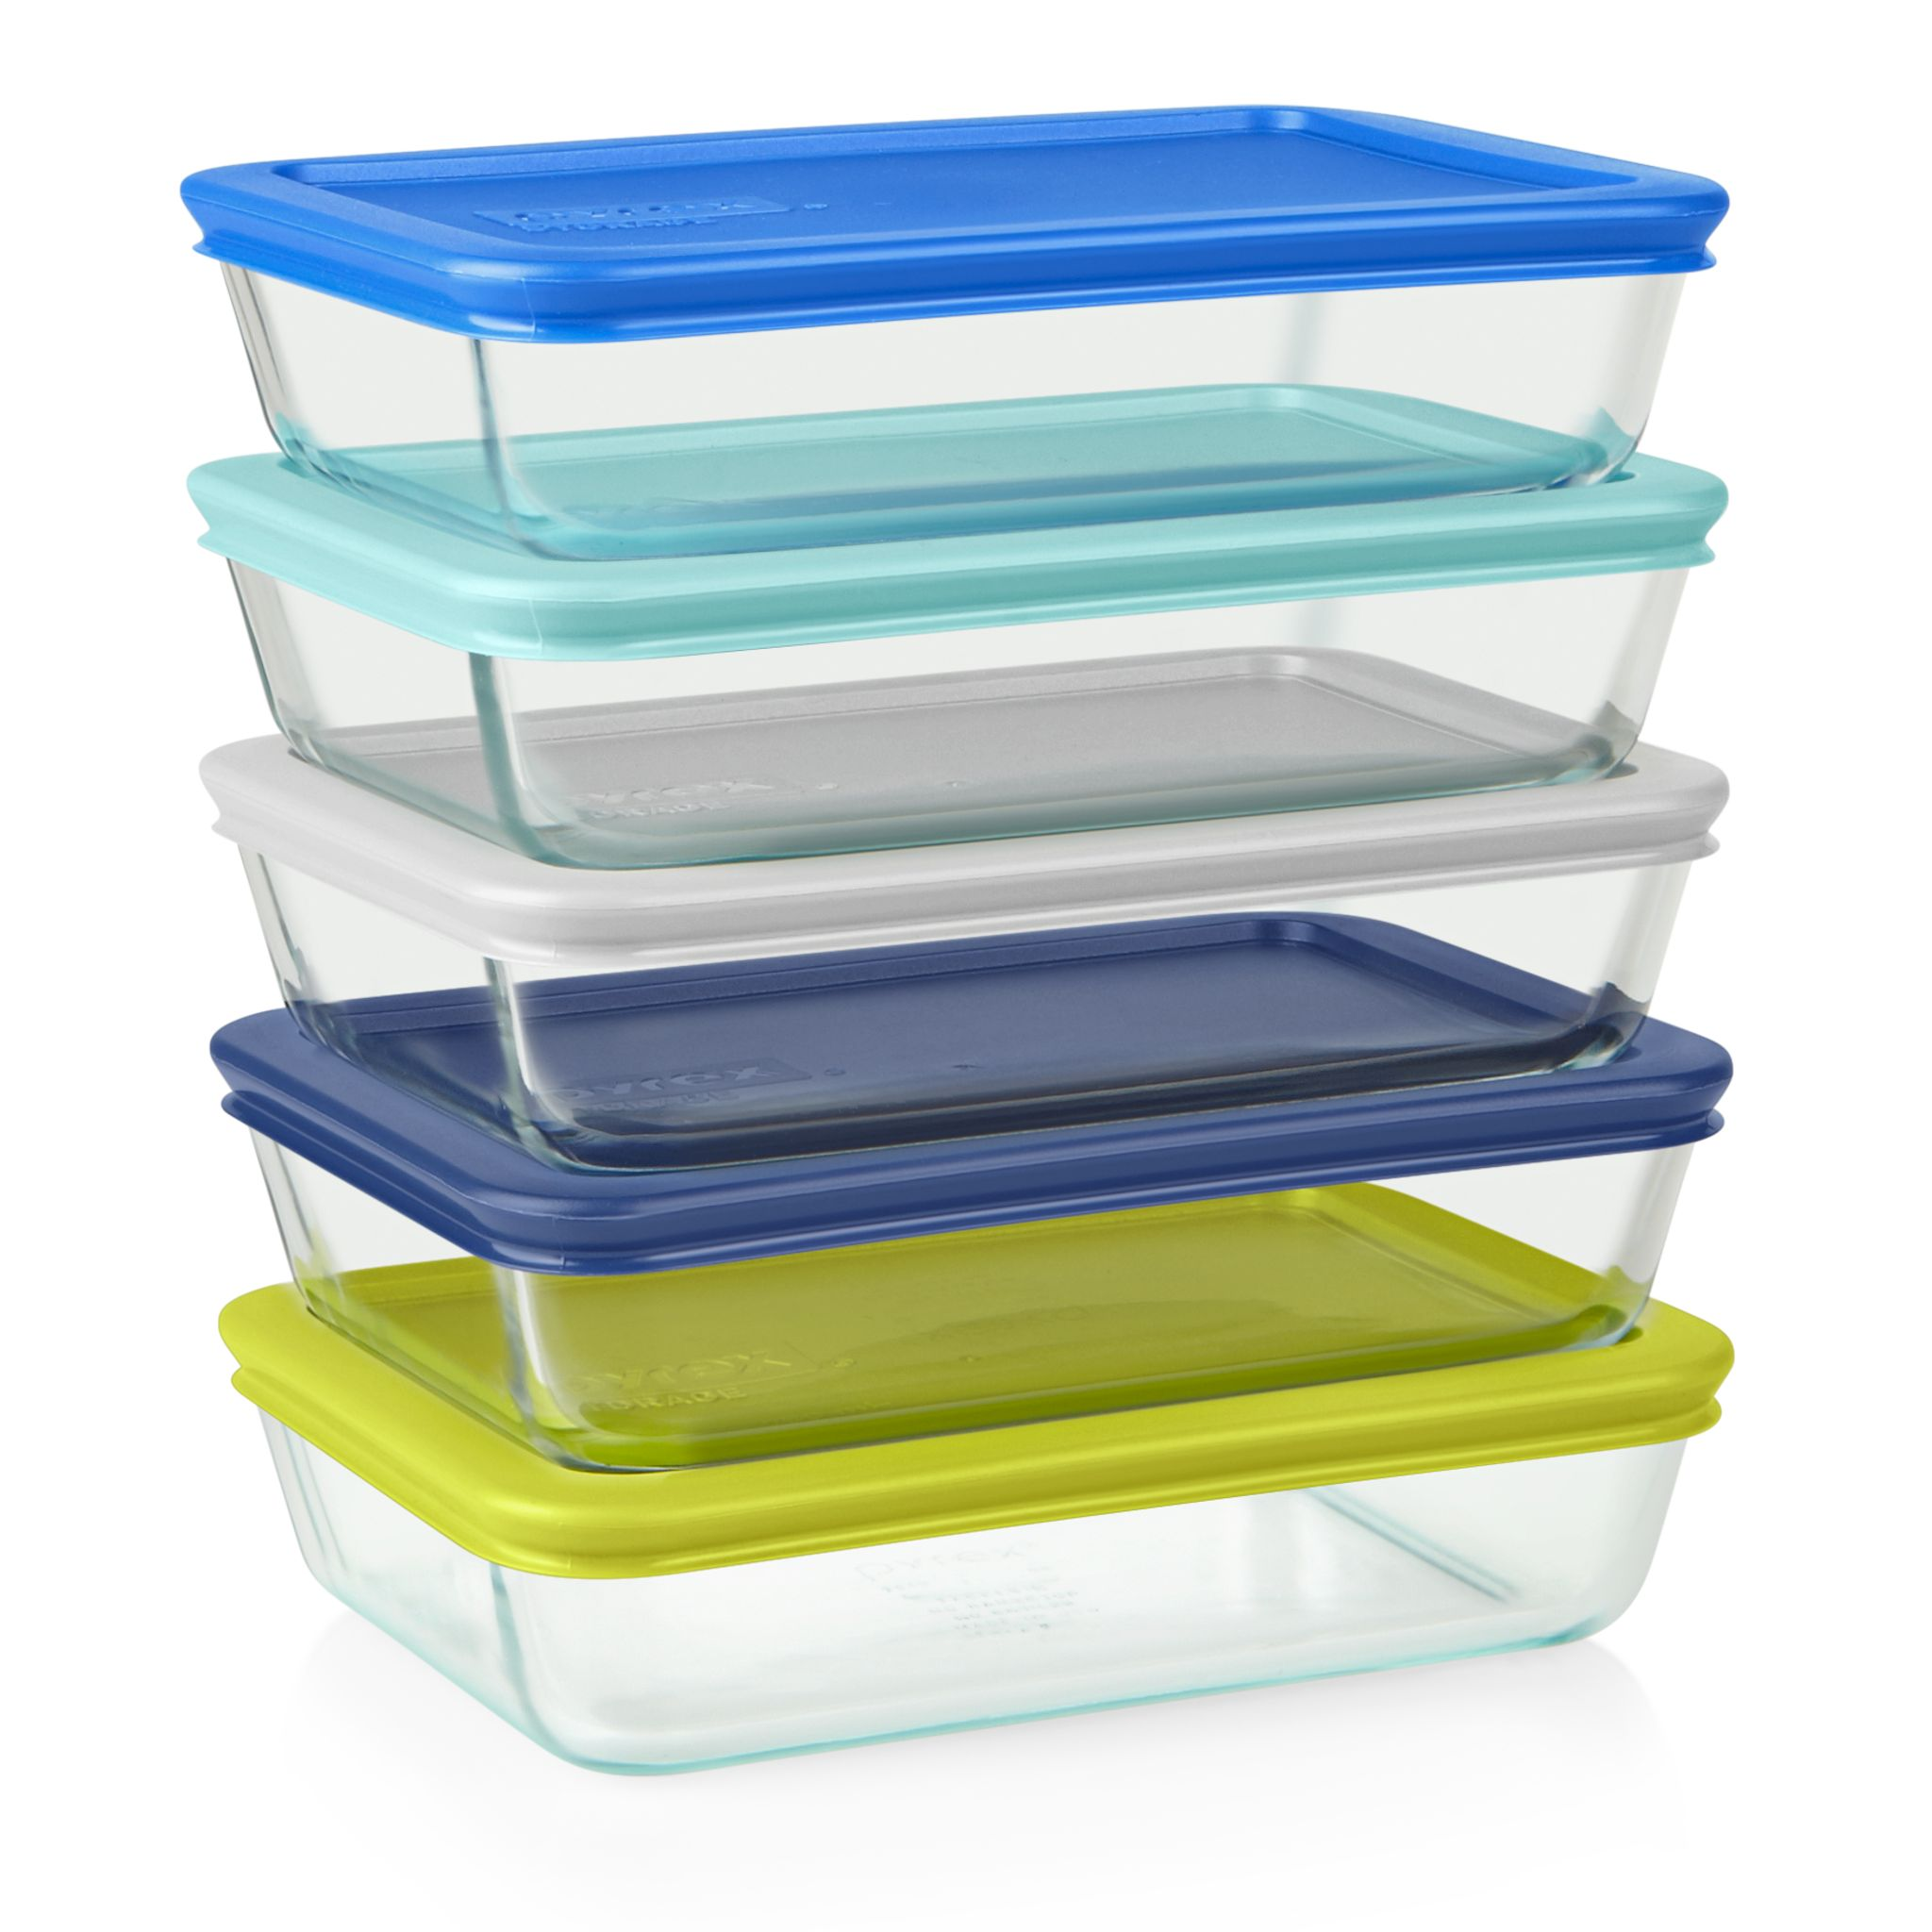 Simply Store 10-piece Meal Prep Rectangular Glass Storage Set